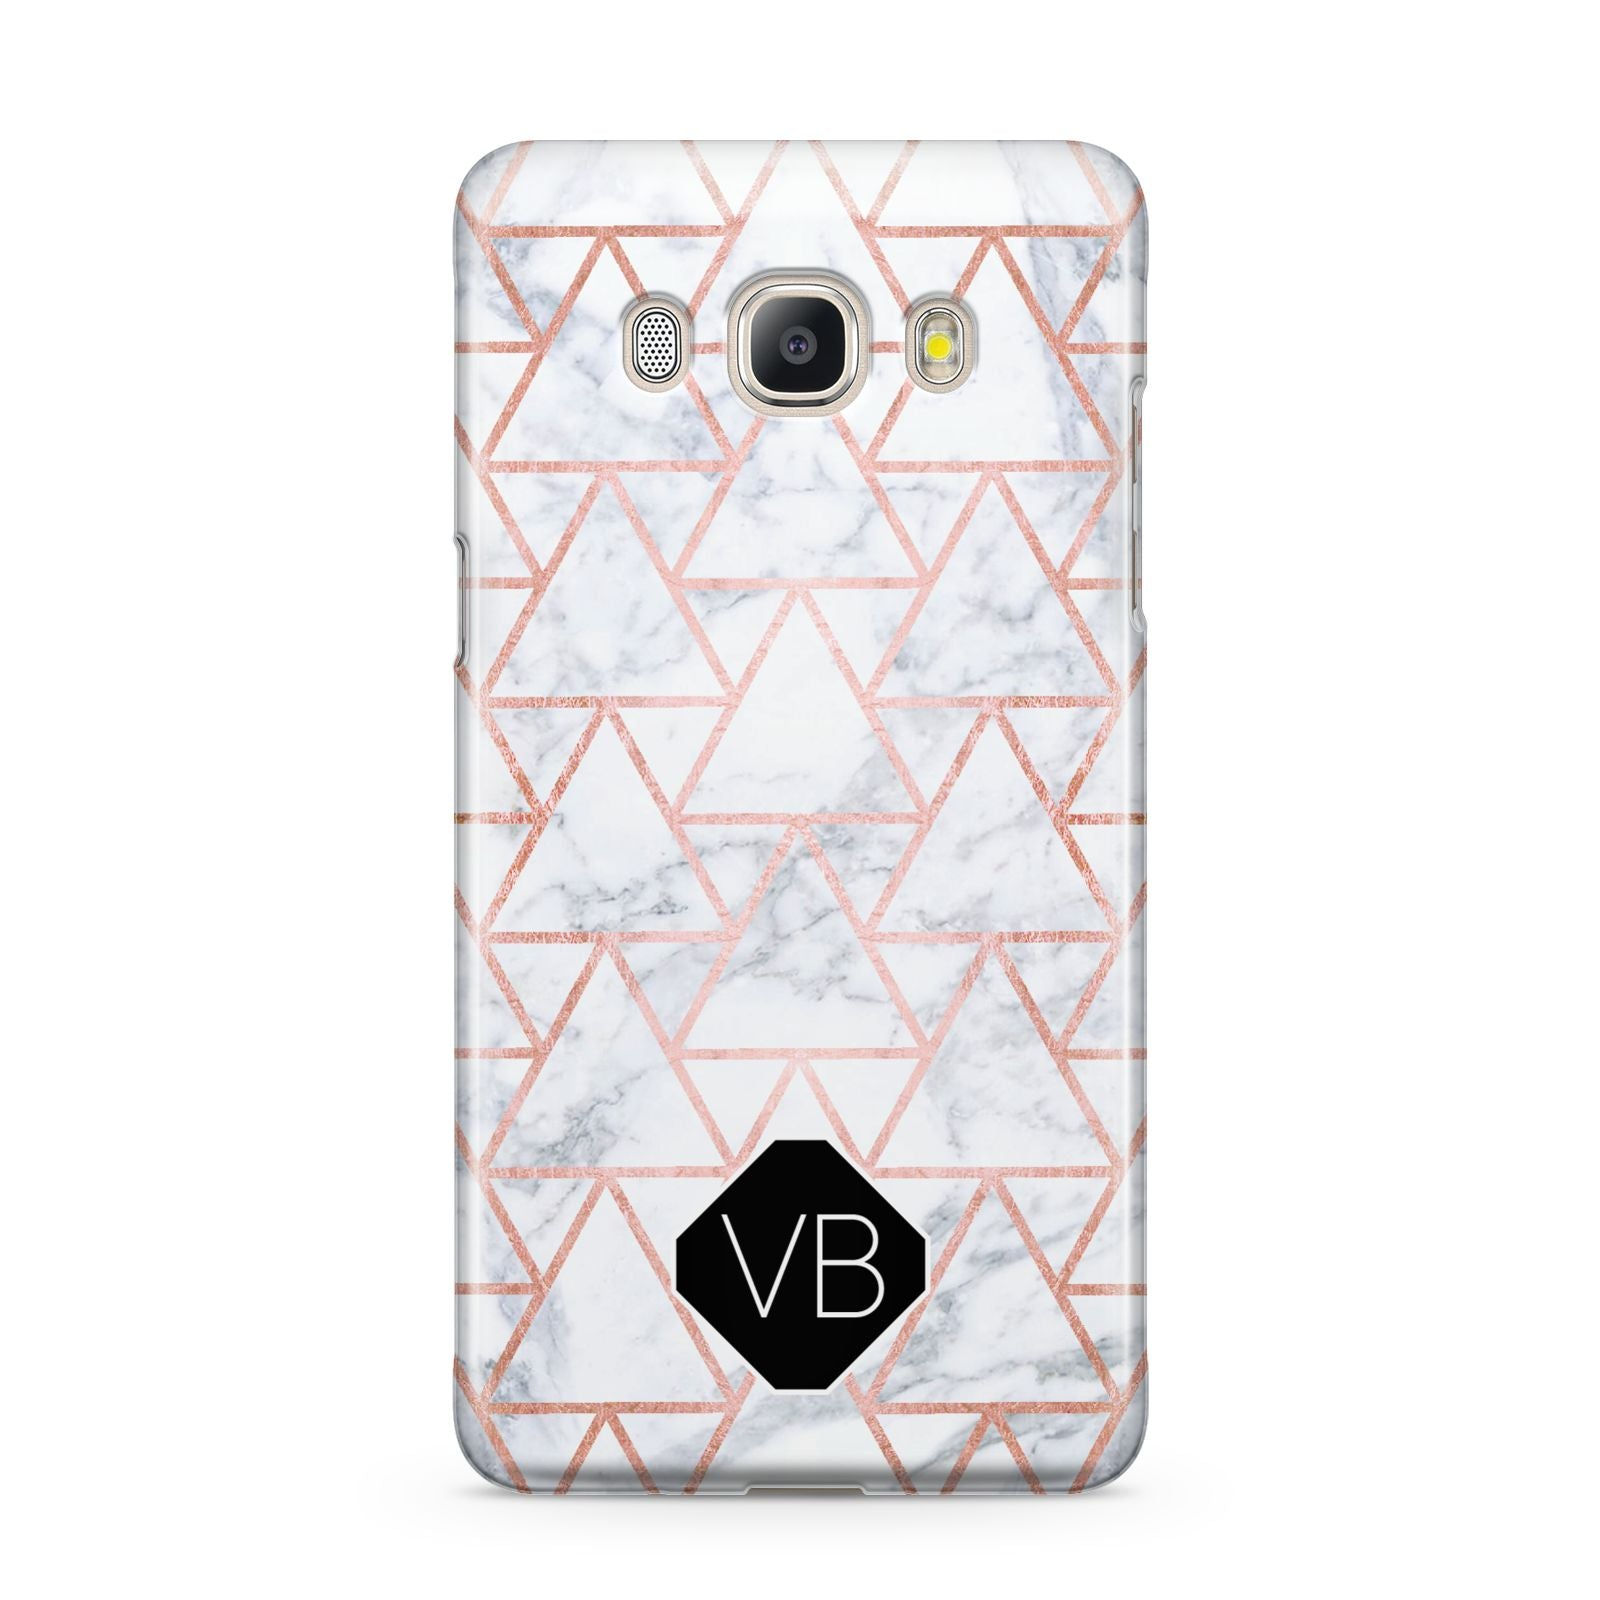 Personalised Rose Gold Grey Marble Hexagon Samsung Galaxy J5 2016 Case